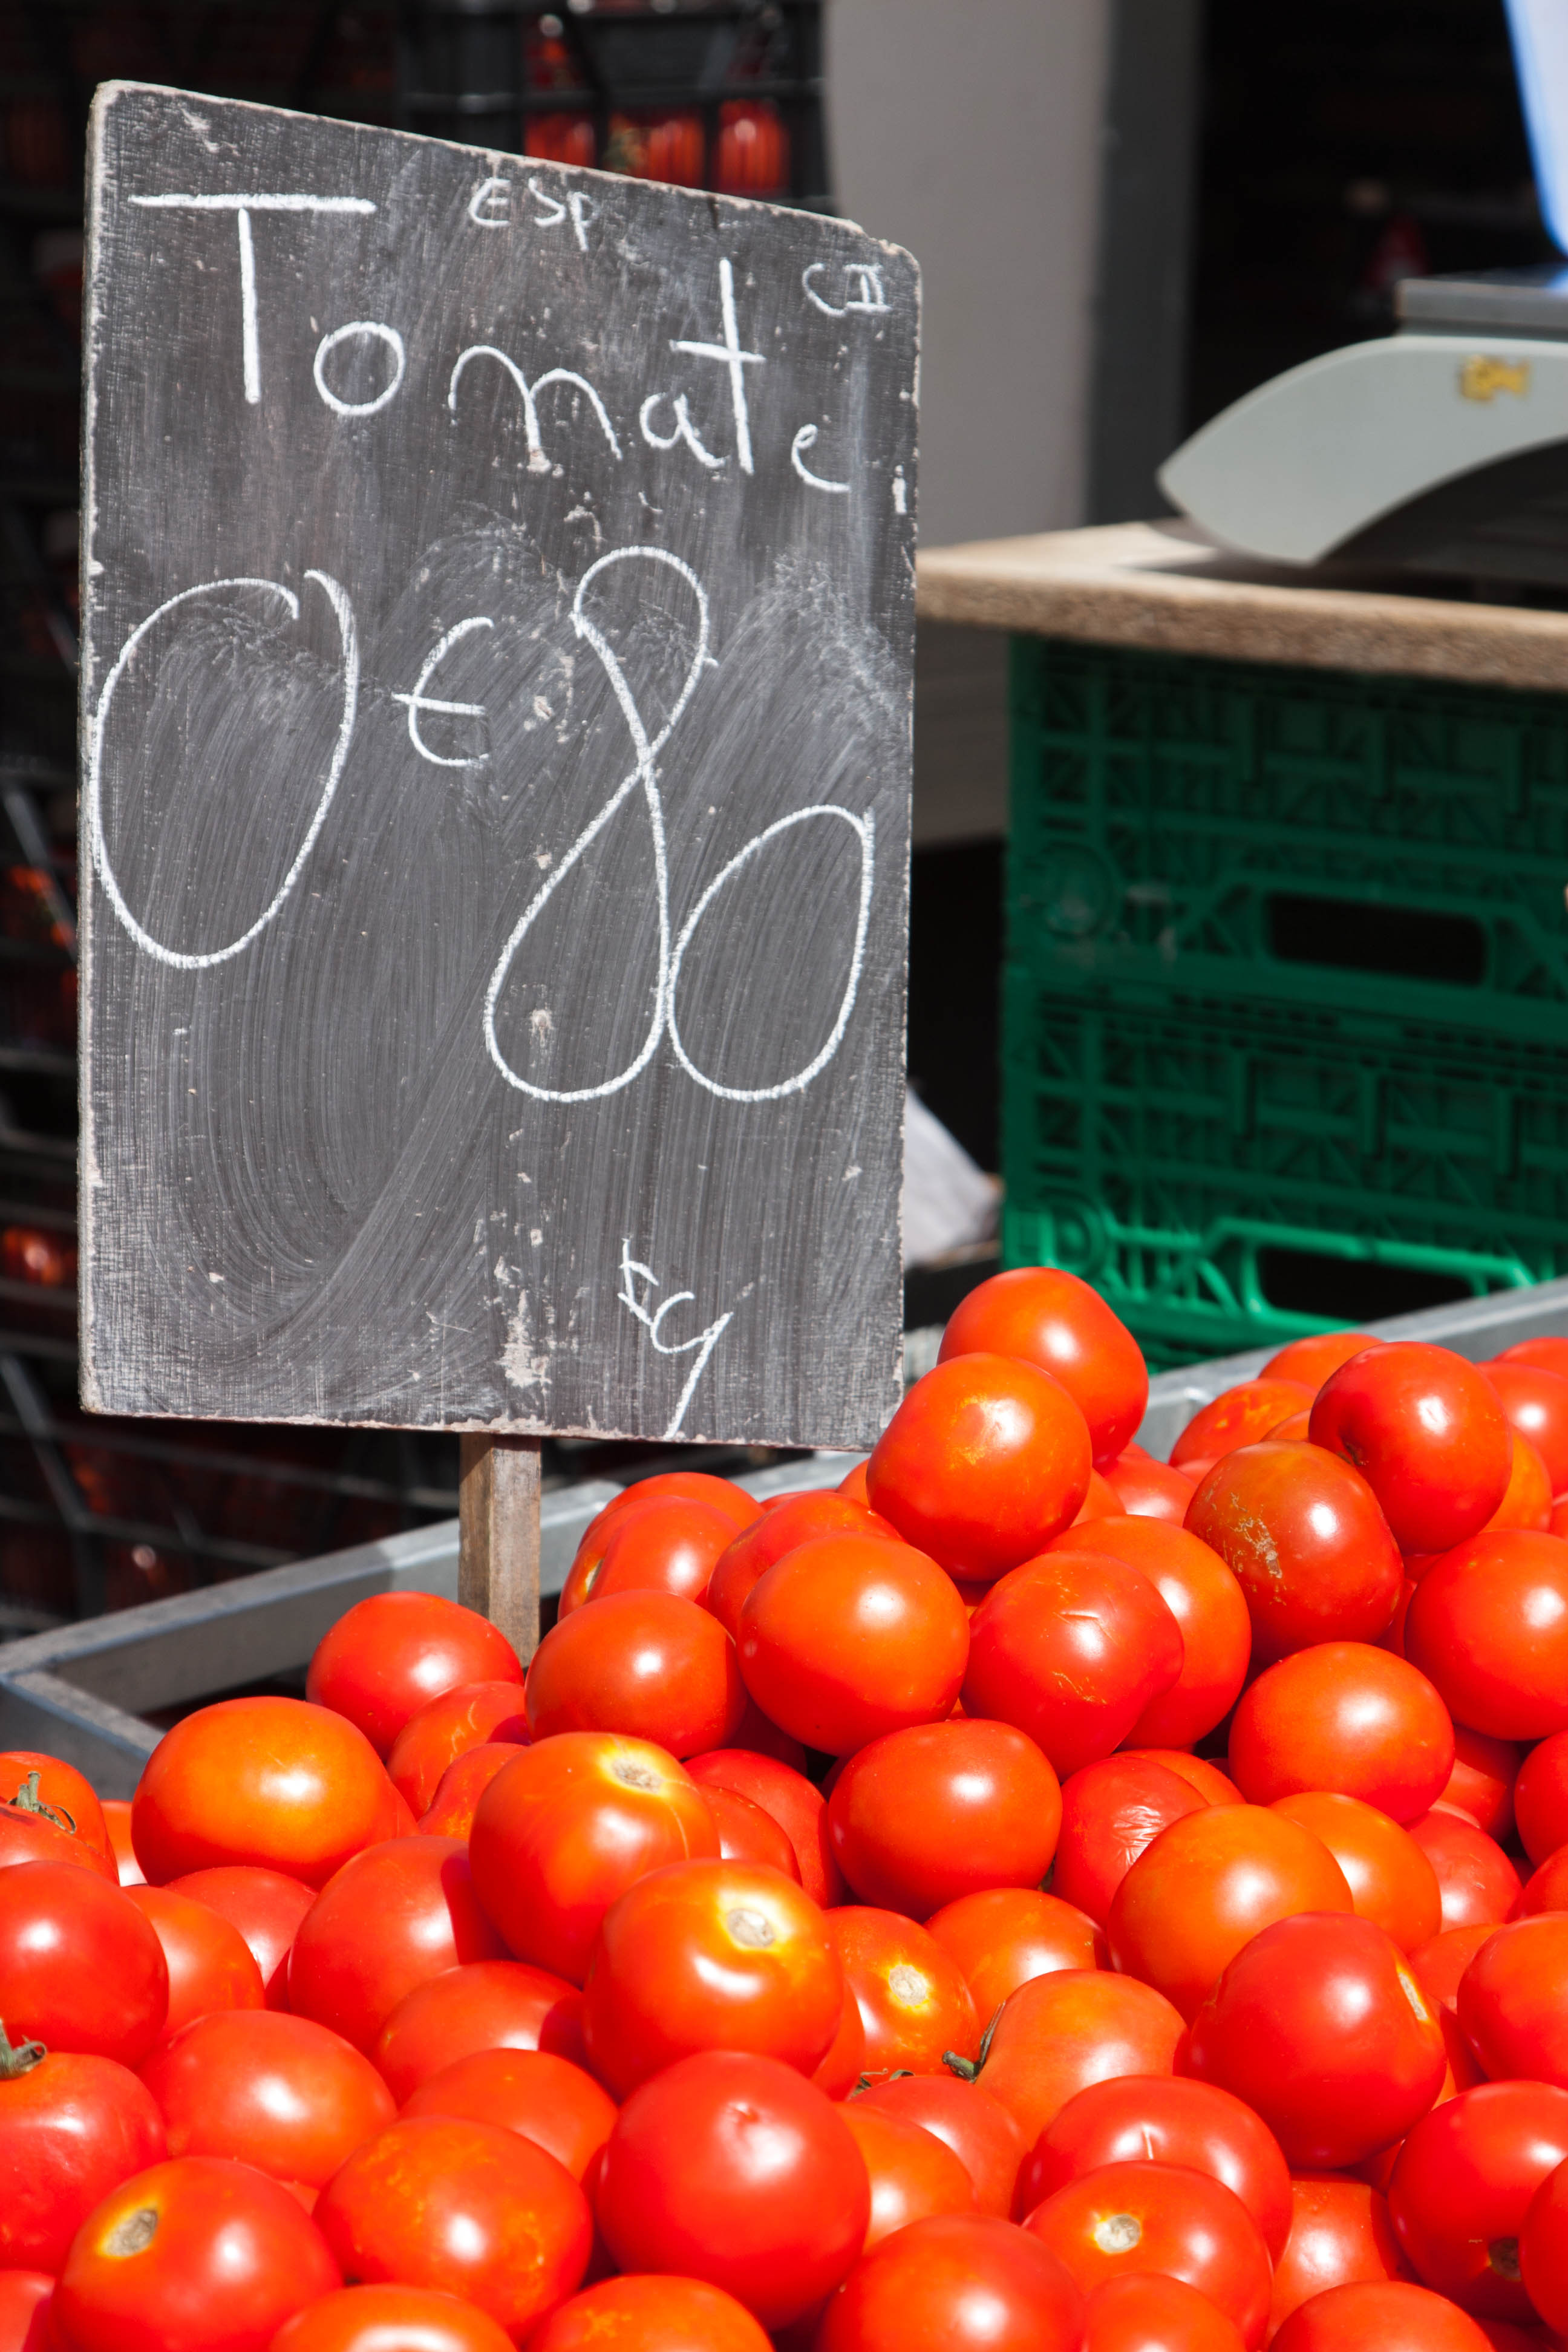 cherry tomatoes for sale at market